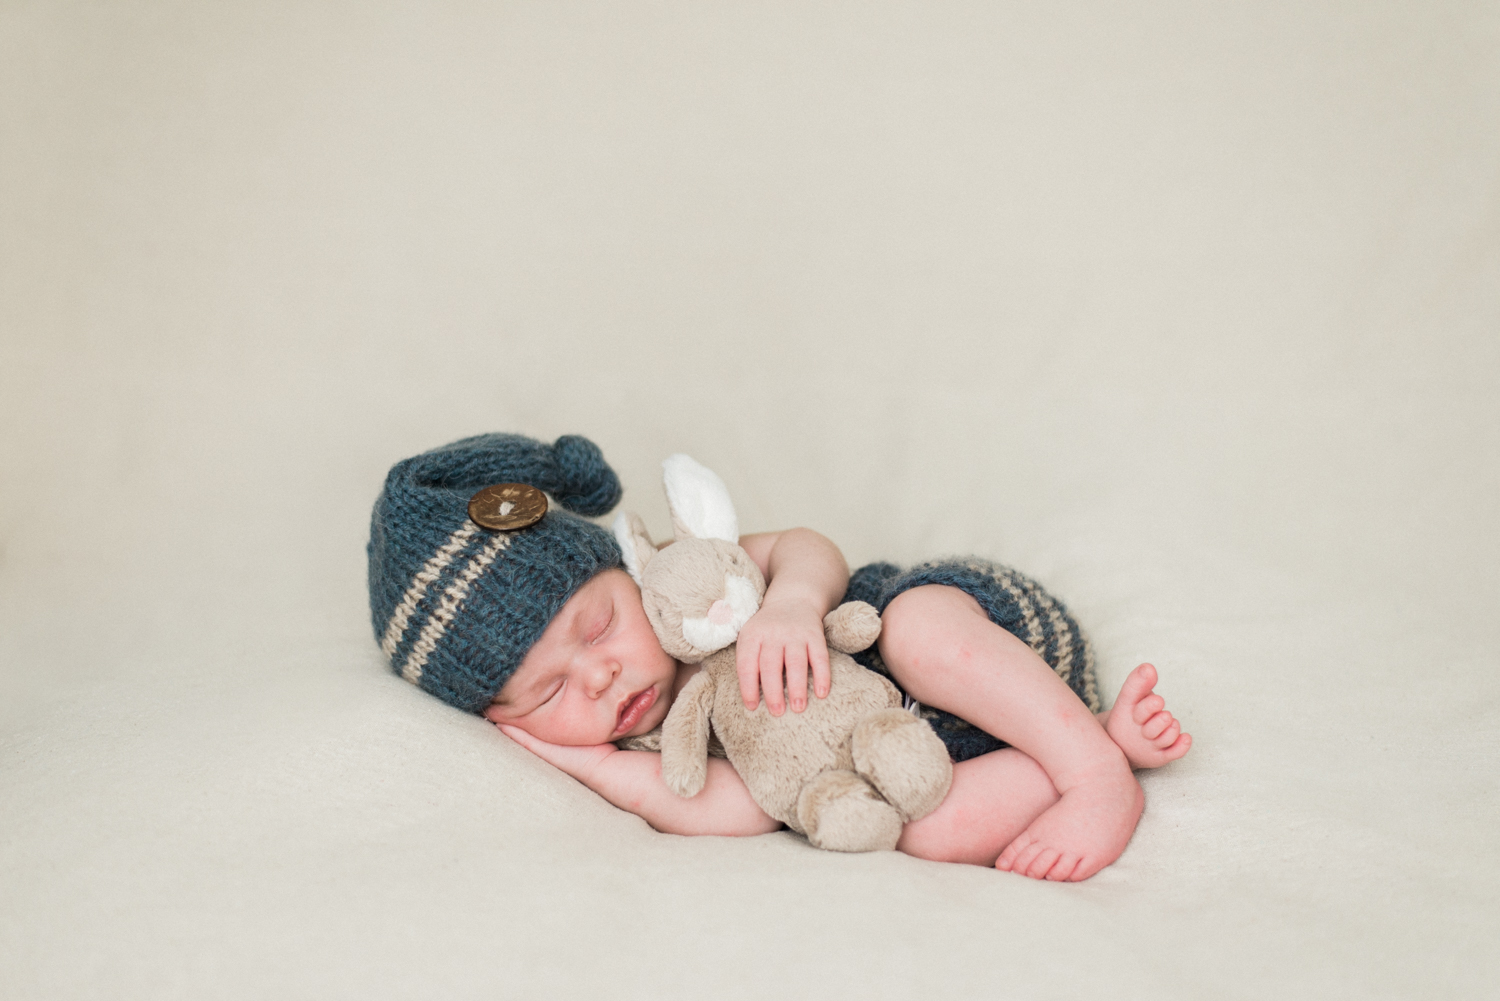 portland-newborn-baby-photography-peter-rabbit-bunny-knit-overalls-hat-1.jpg